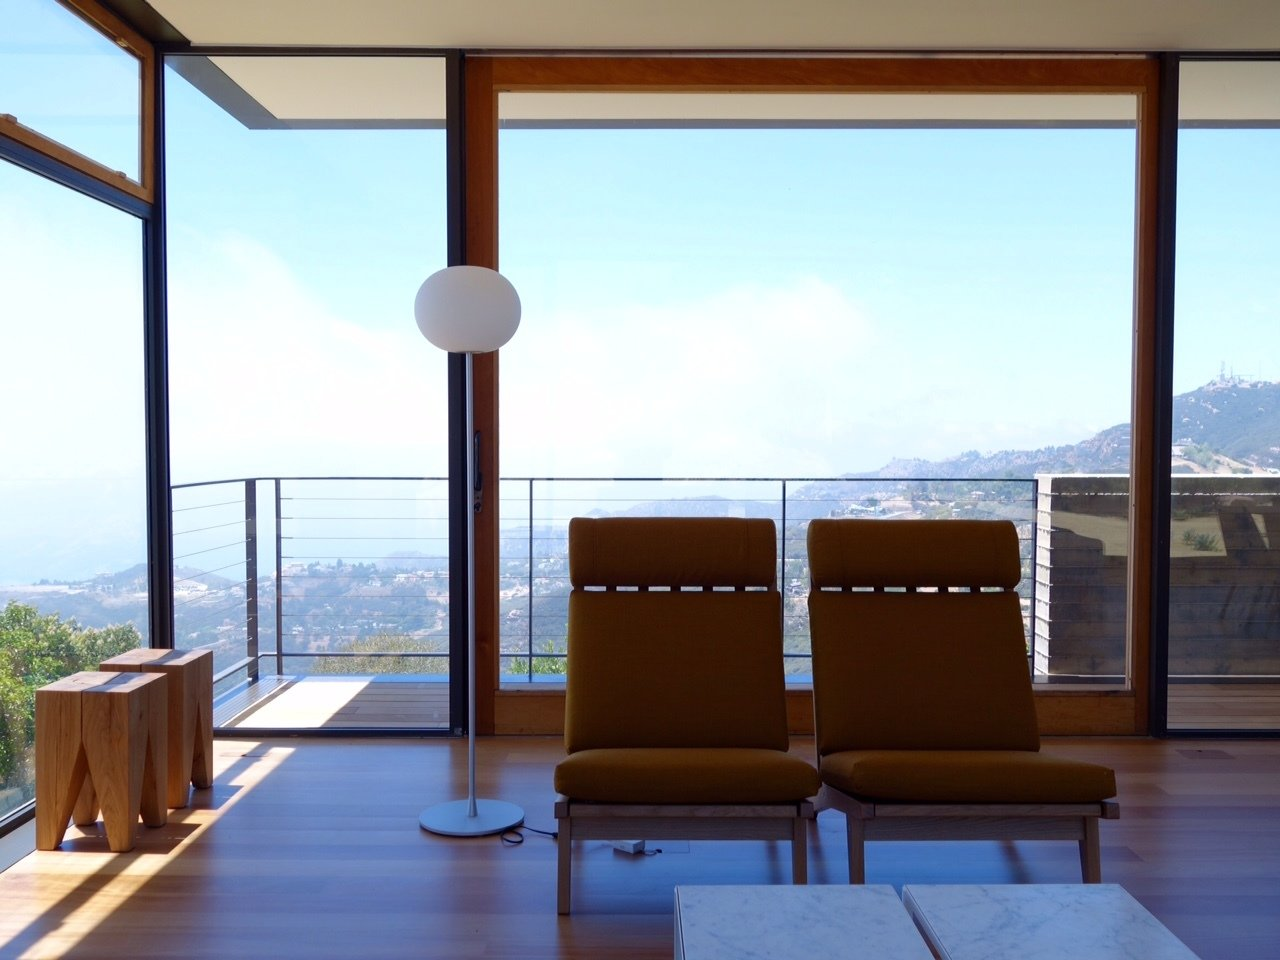 Photo 1 of 7 in Take Your Next Vacation in a Midcentury Home in the Santa Monica Mountains